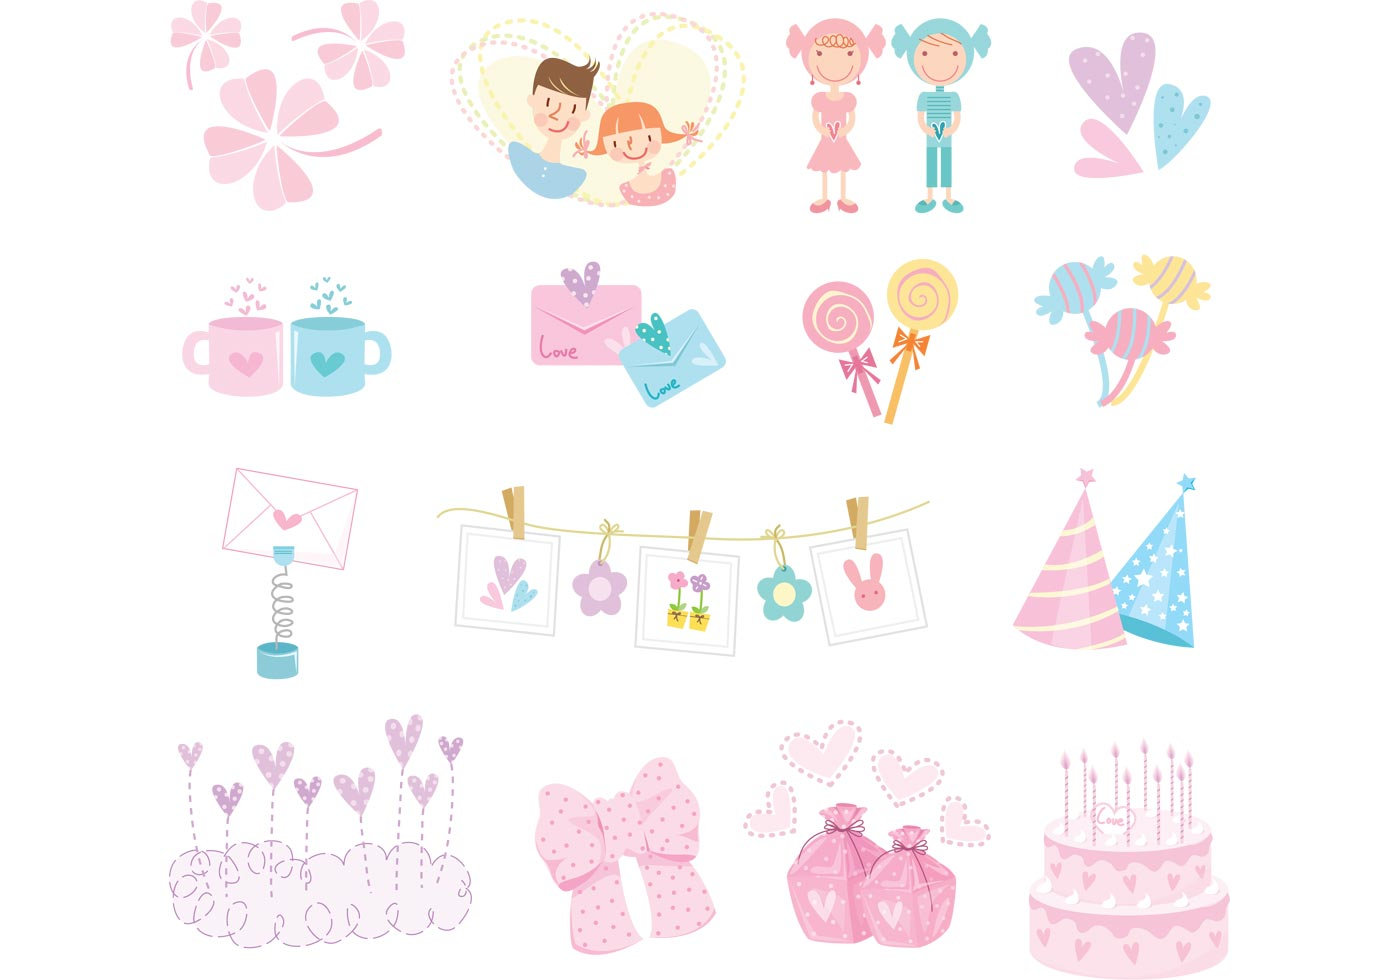 17 Girly Vector Graphi...